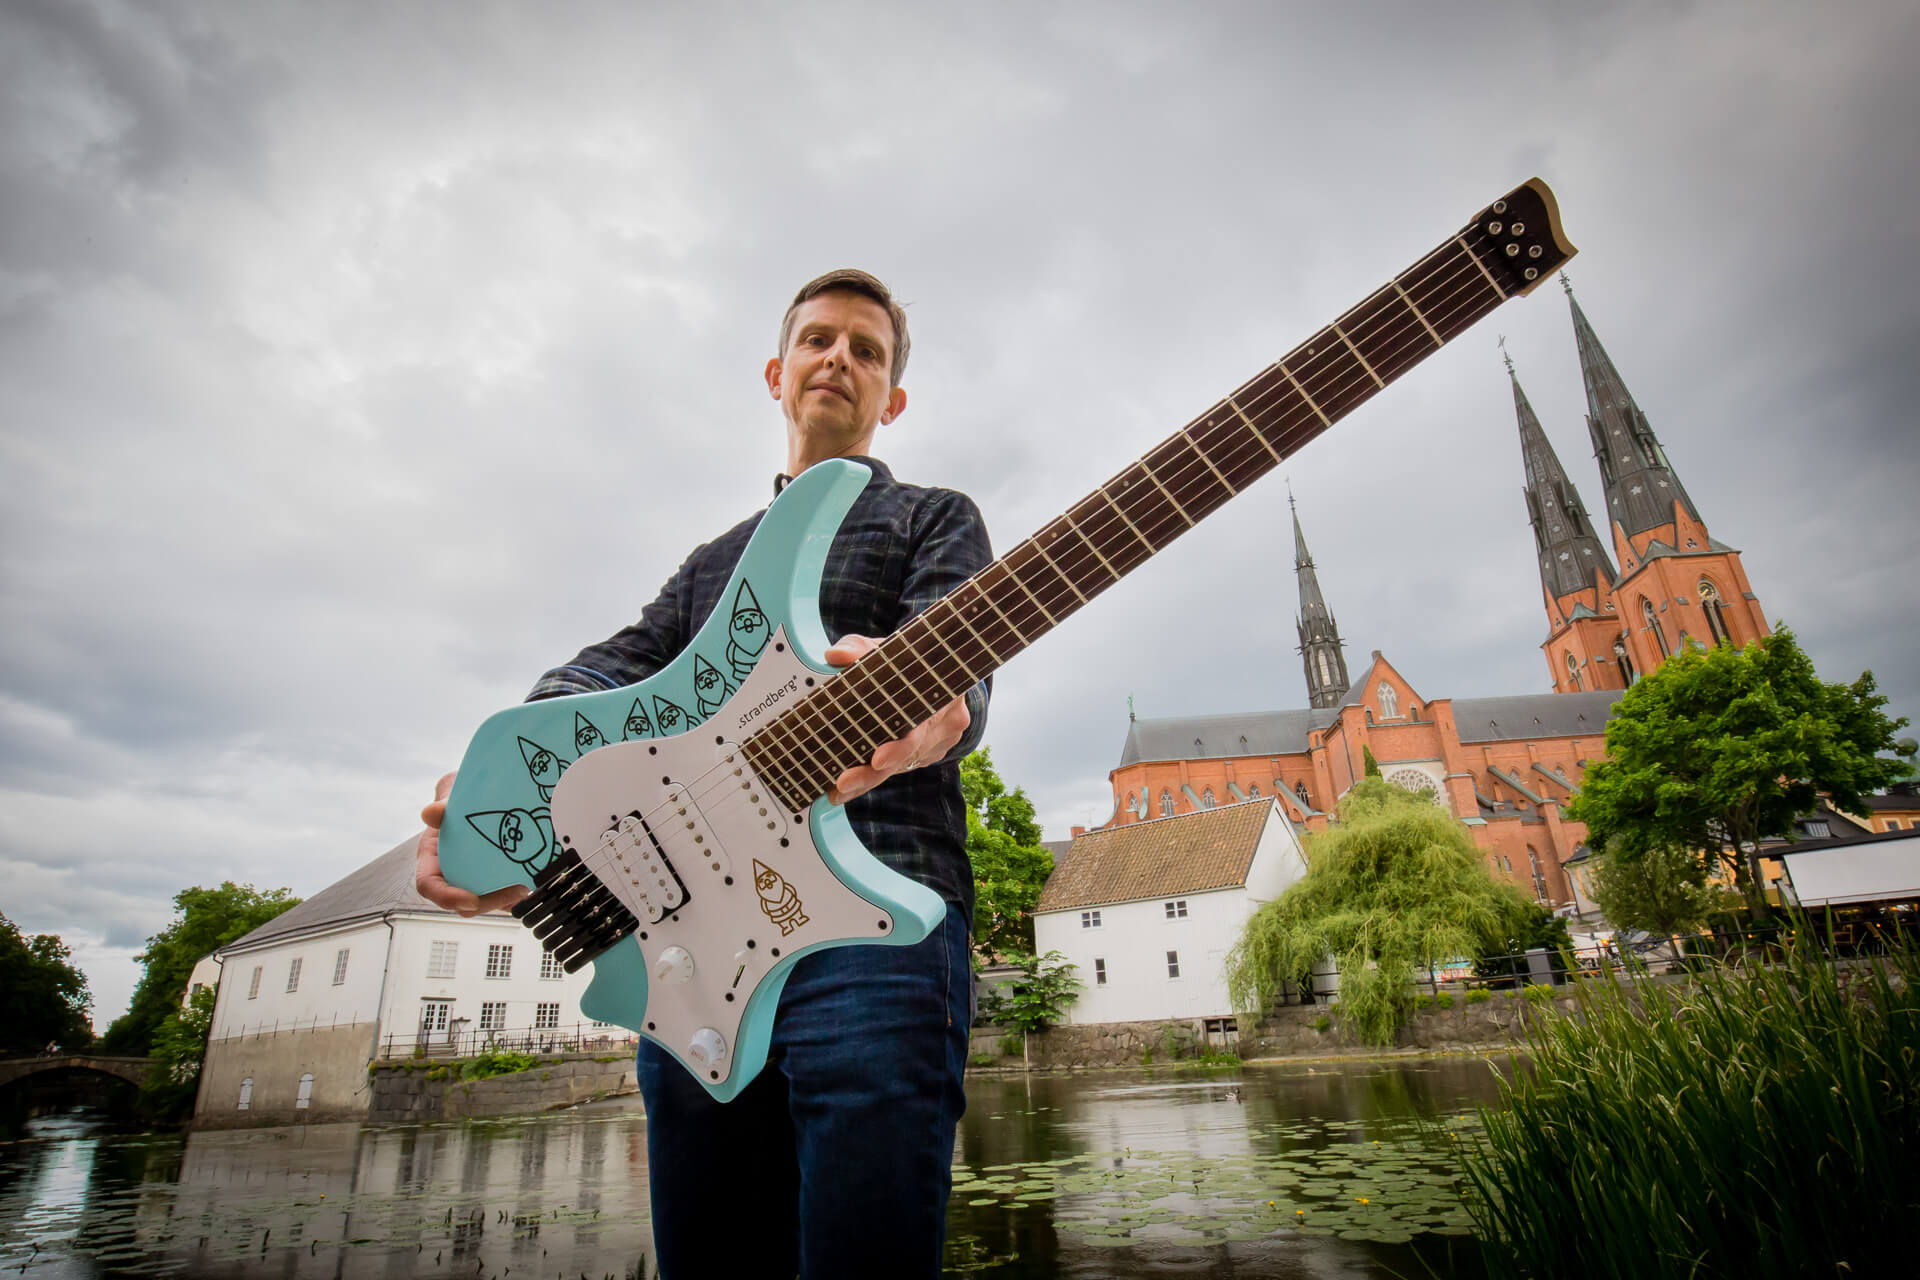 Ola Strandberg (obtenido de https://strandbergguitars.com/row/the-strandberg-traveling-gnome-boden-project-winner/)